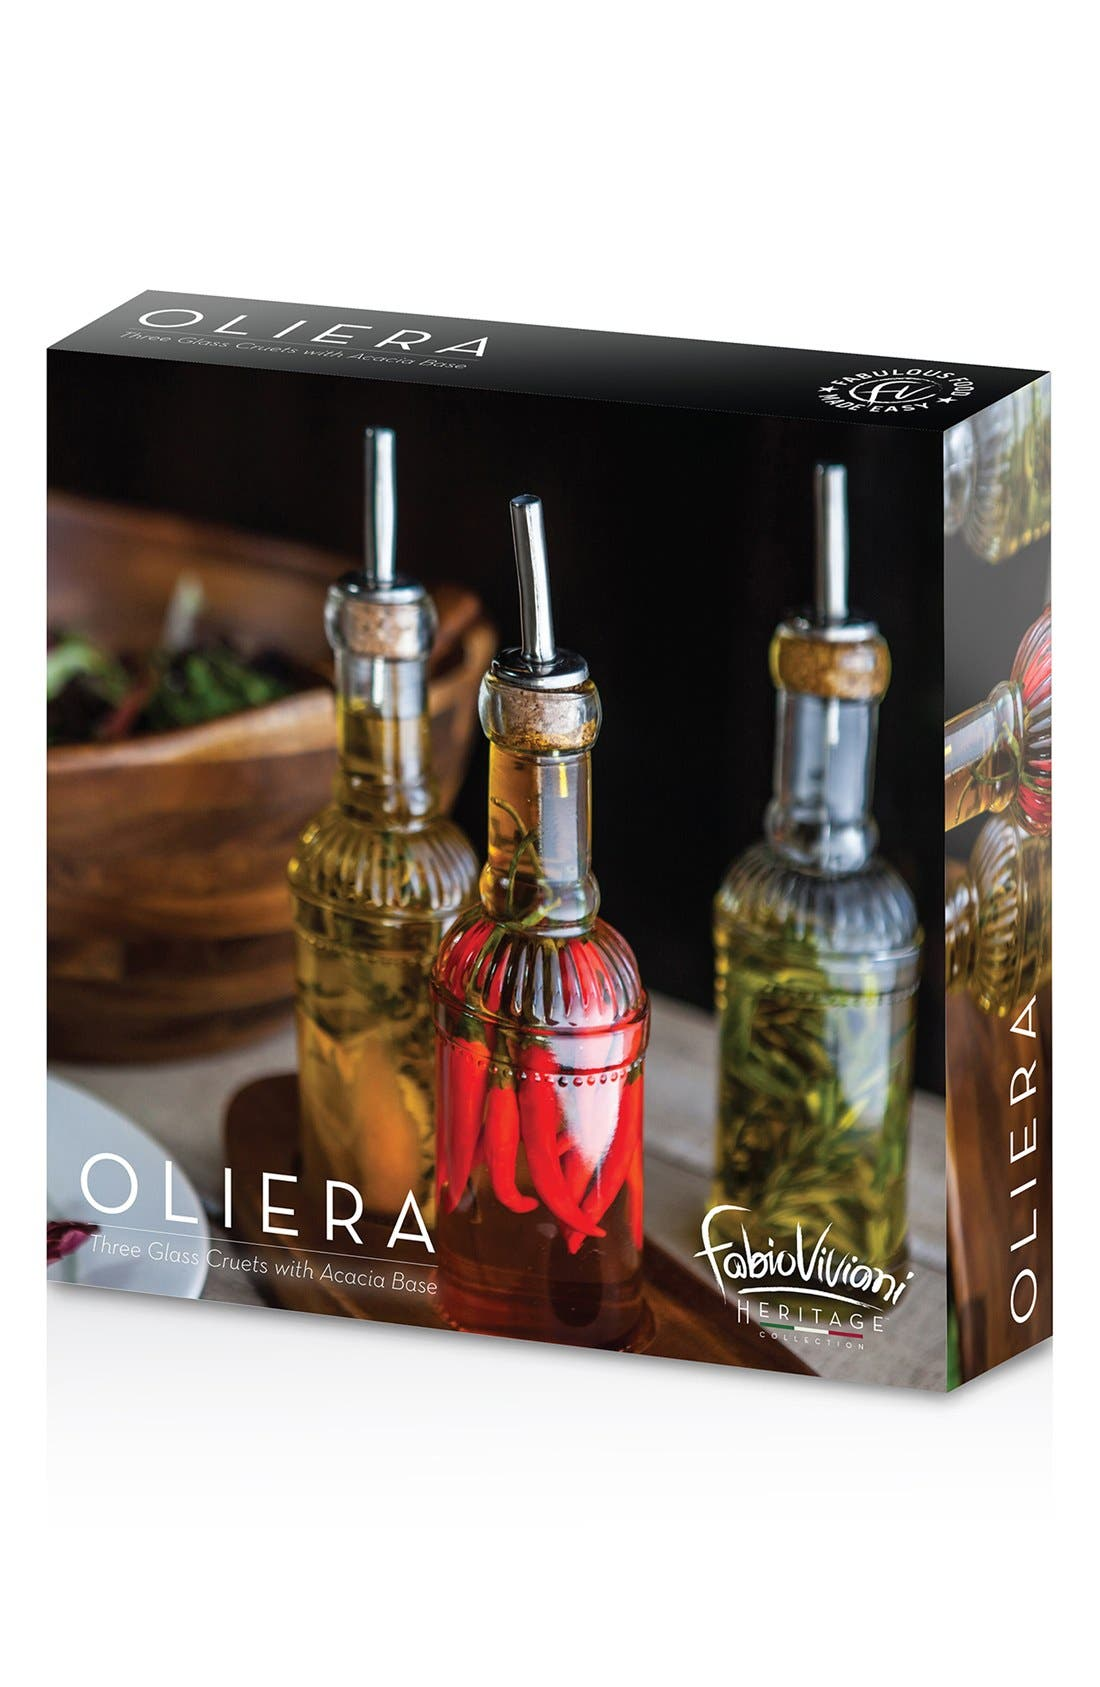 'Legacy Heritage Collection by Fabio Viviani - Oliera' Bottle Set,                             Alternate thumbnail 4, color,                             BROWN